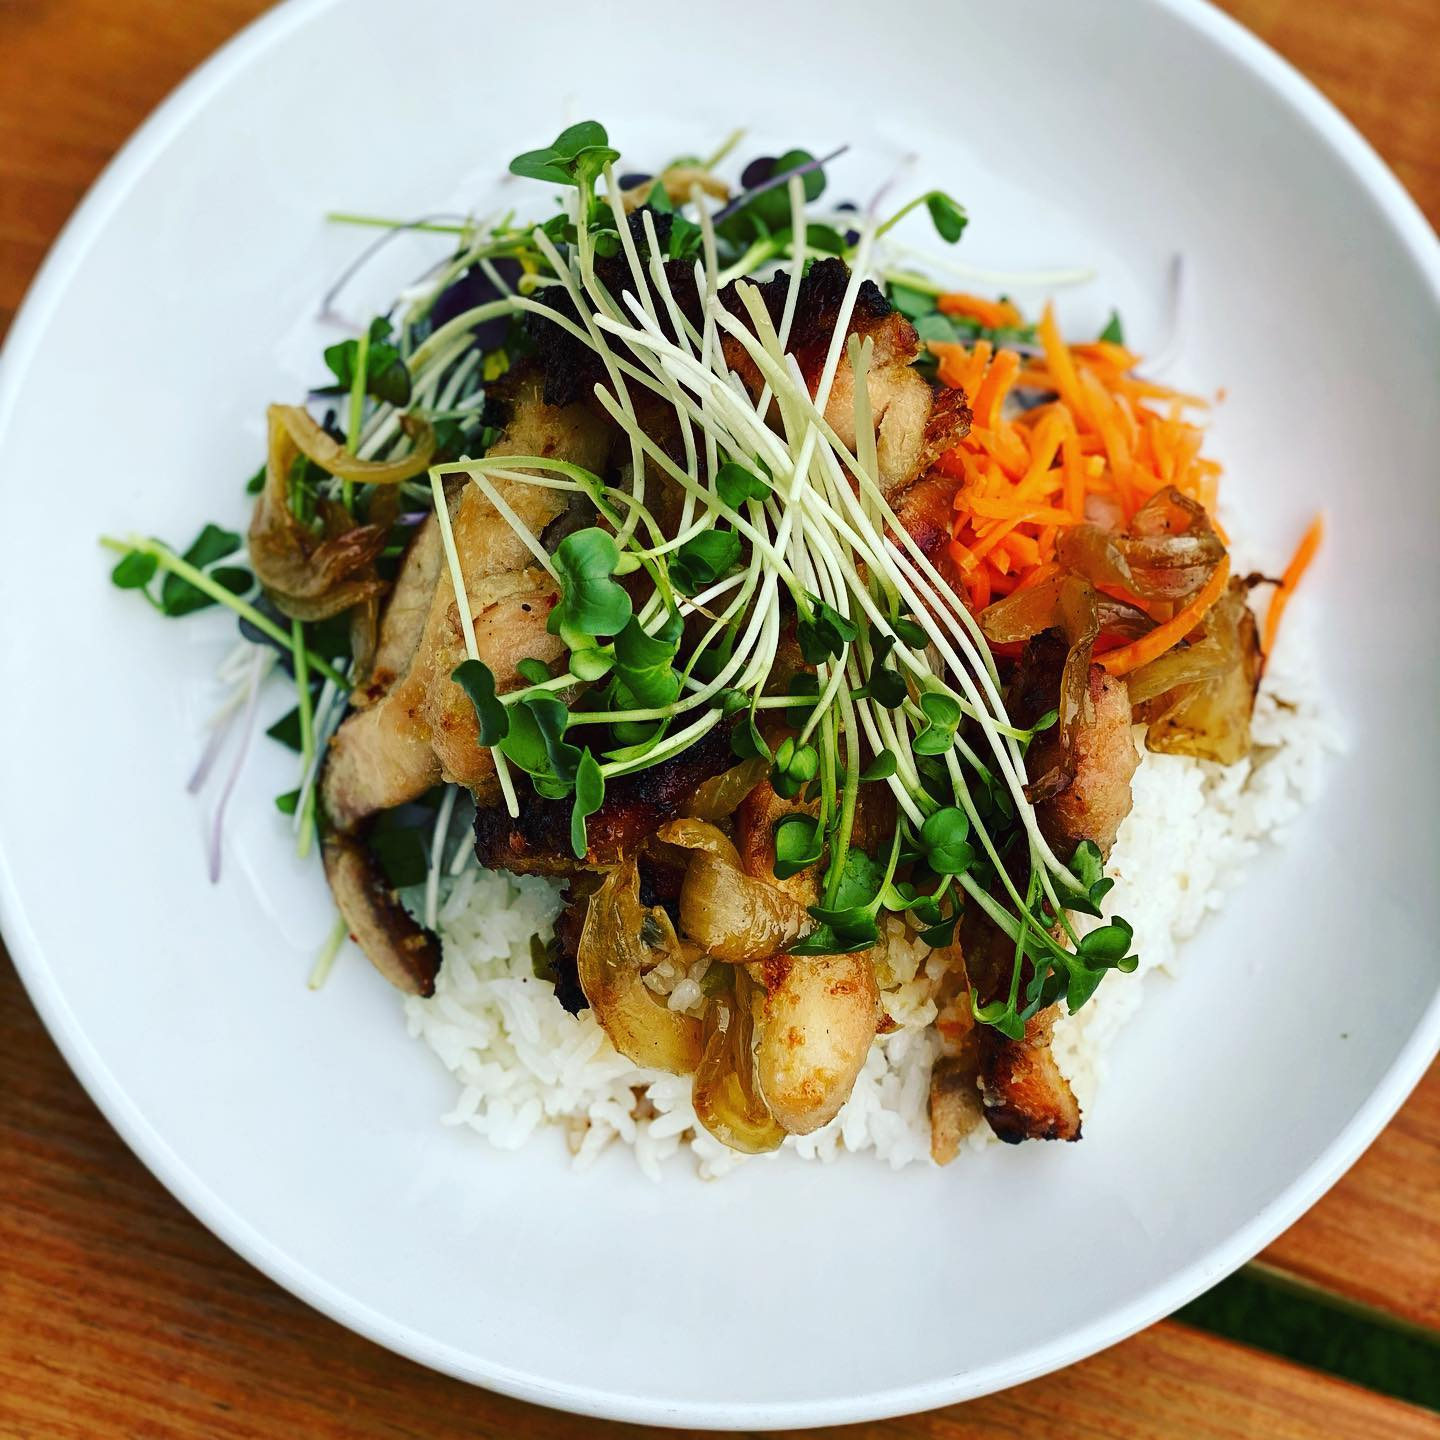 Grilled Lemongrass Chicken with Hot Steamy Rice, Pickled Vegetables & Microgreens